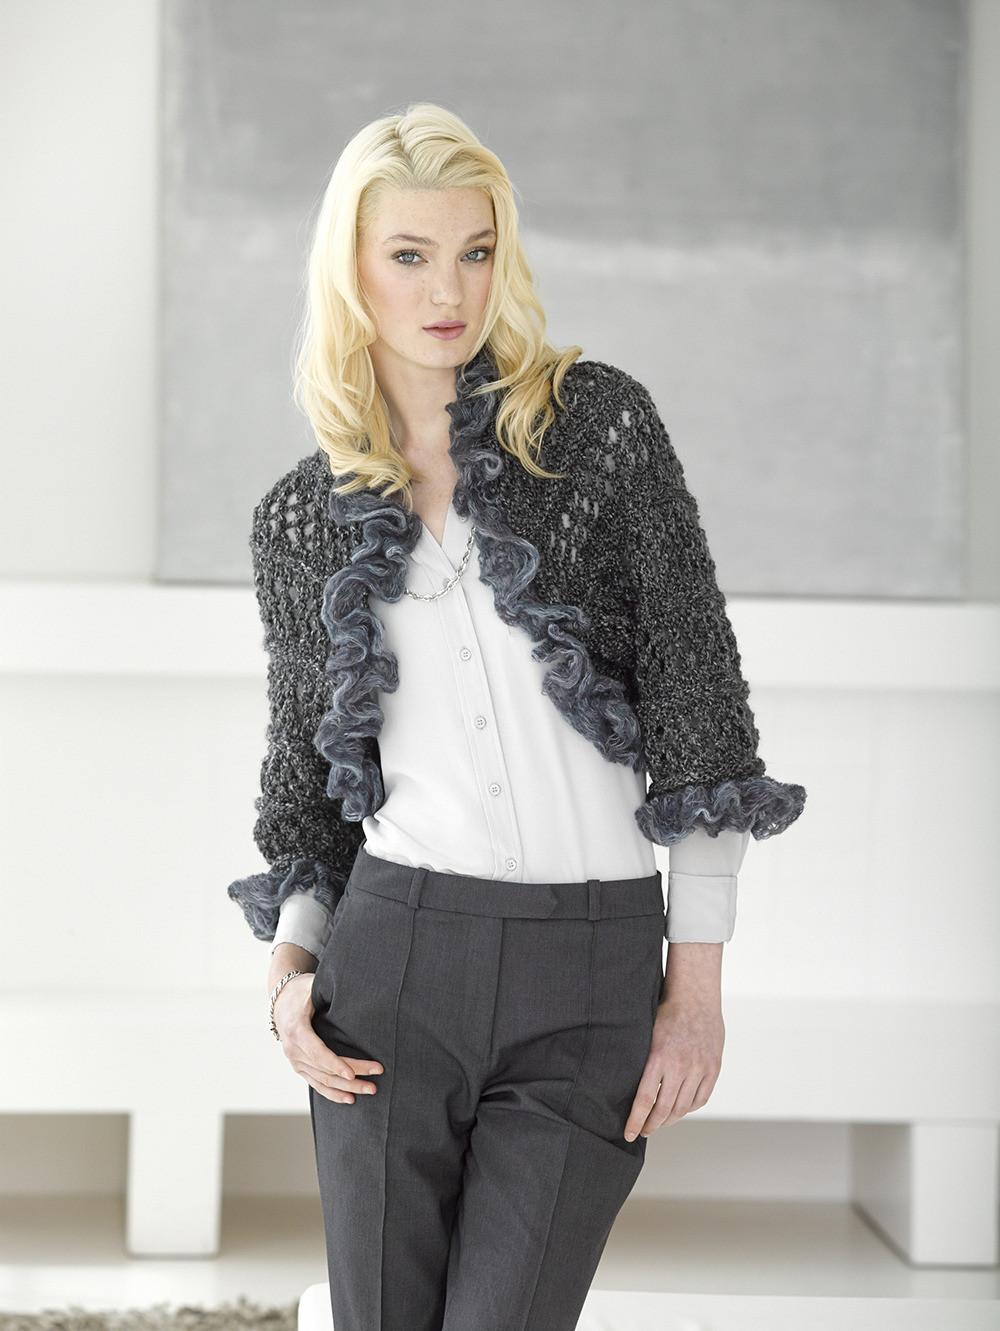 Best Of Openwork Knit Shrug In Lion Brand Homespun Thick & Quick Knit Shrug Of Fresh 48 Ideas Knit Shrug